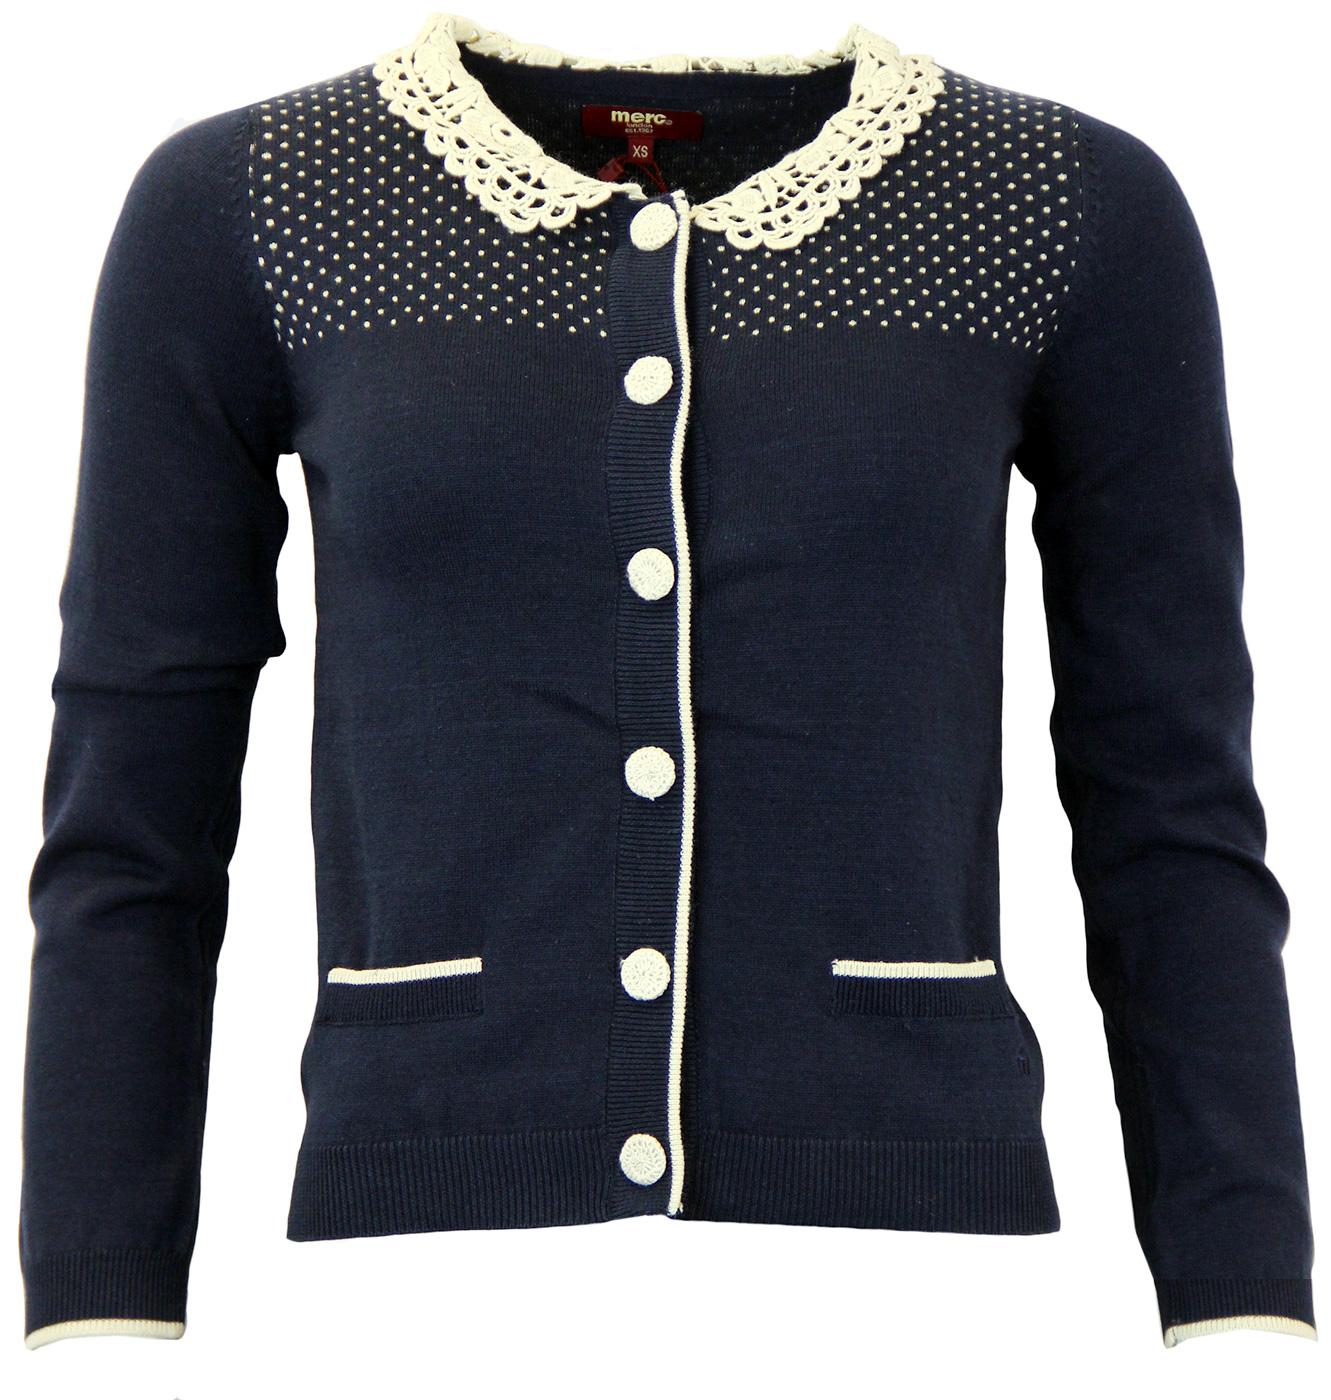 Kastel MERC Retro Vintage Lace Knitted Cardigan